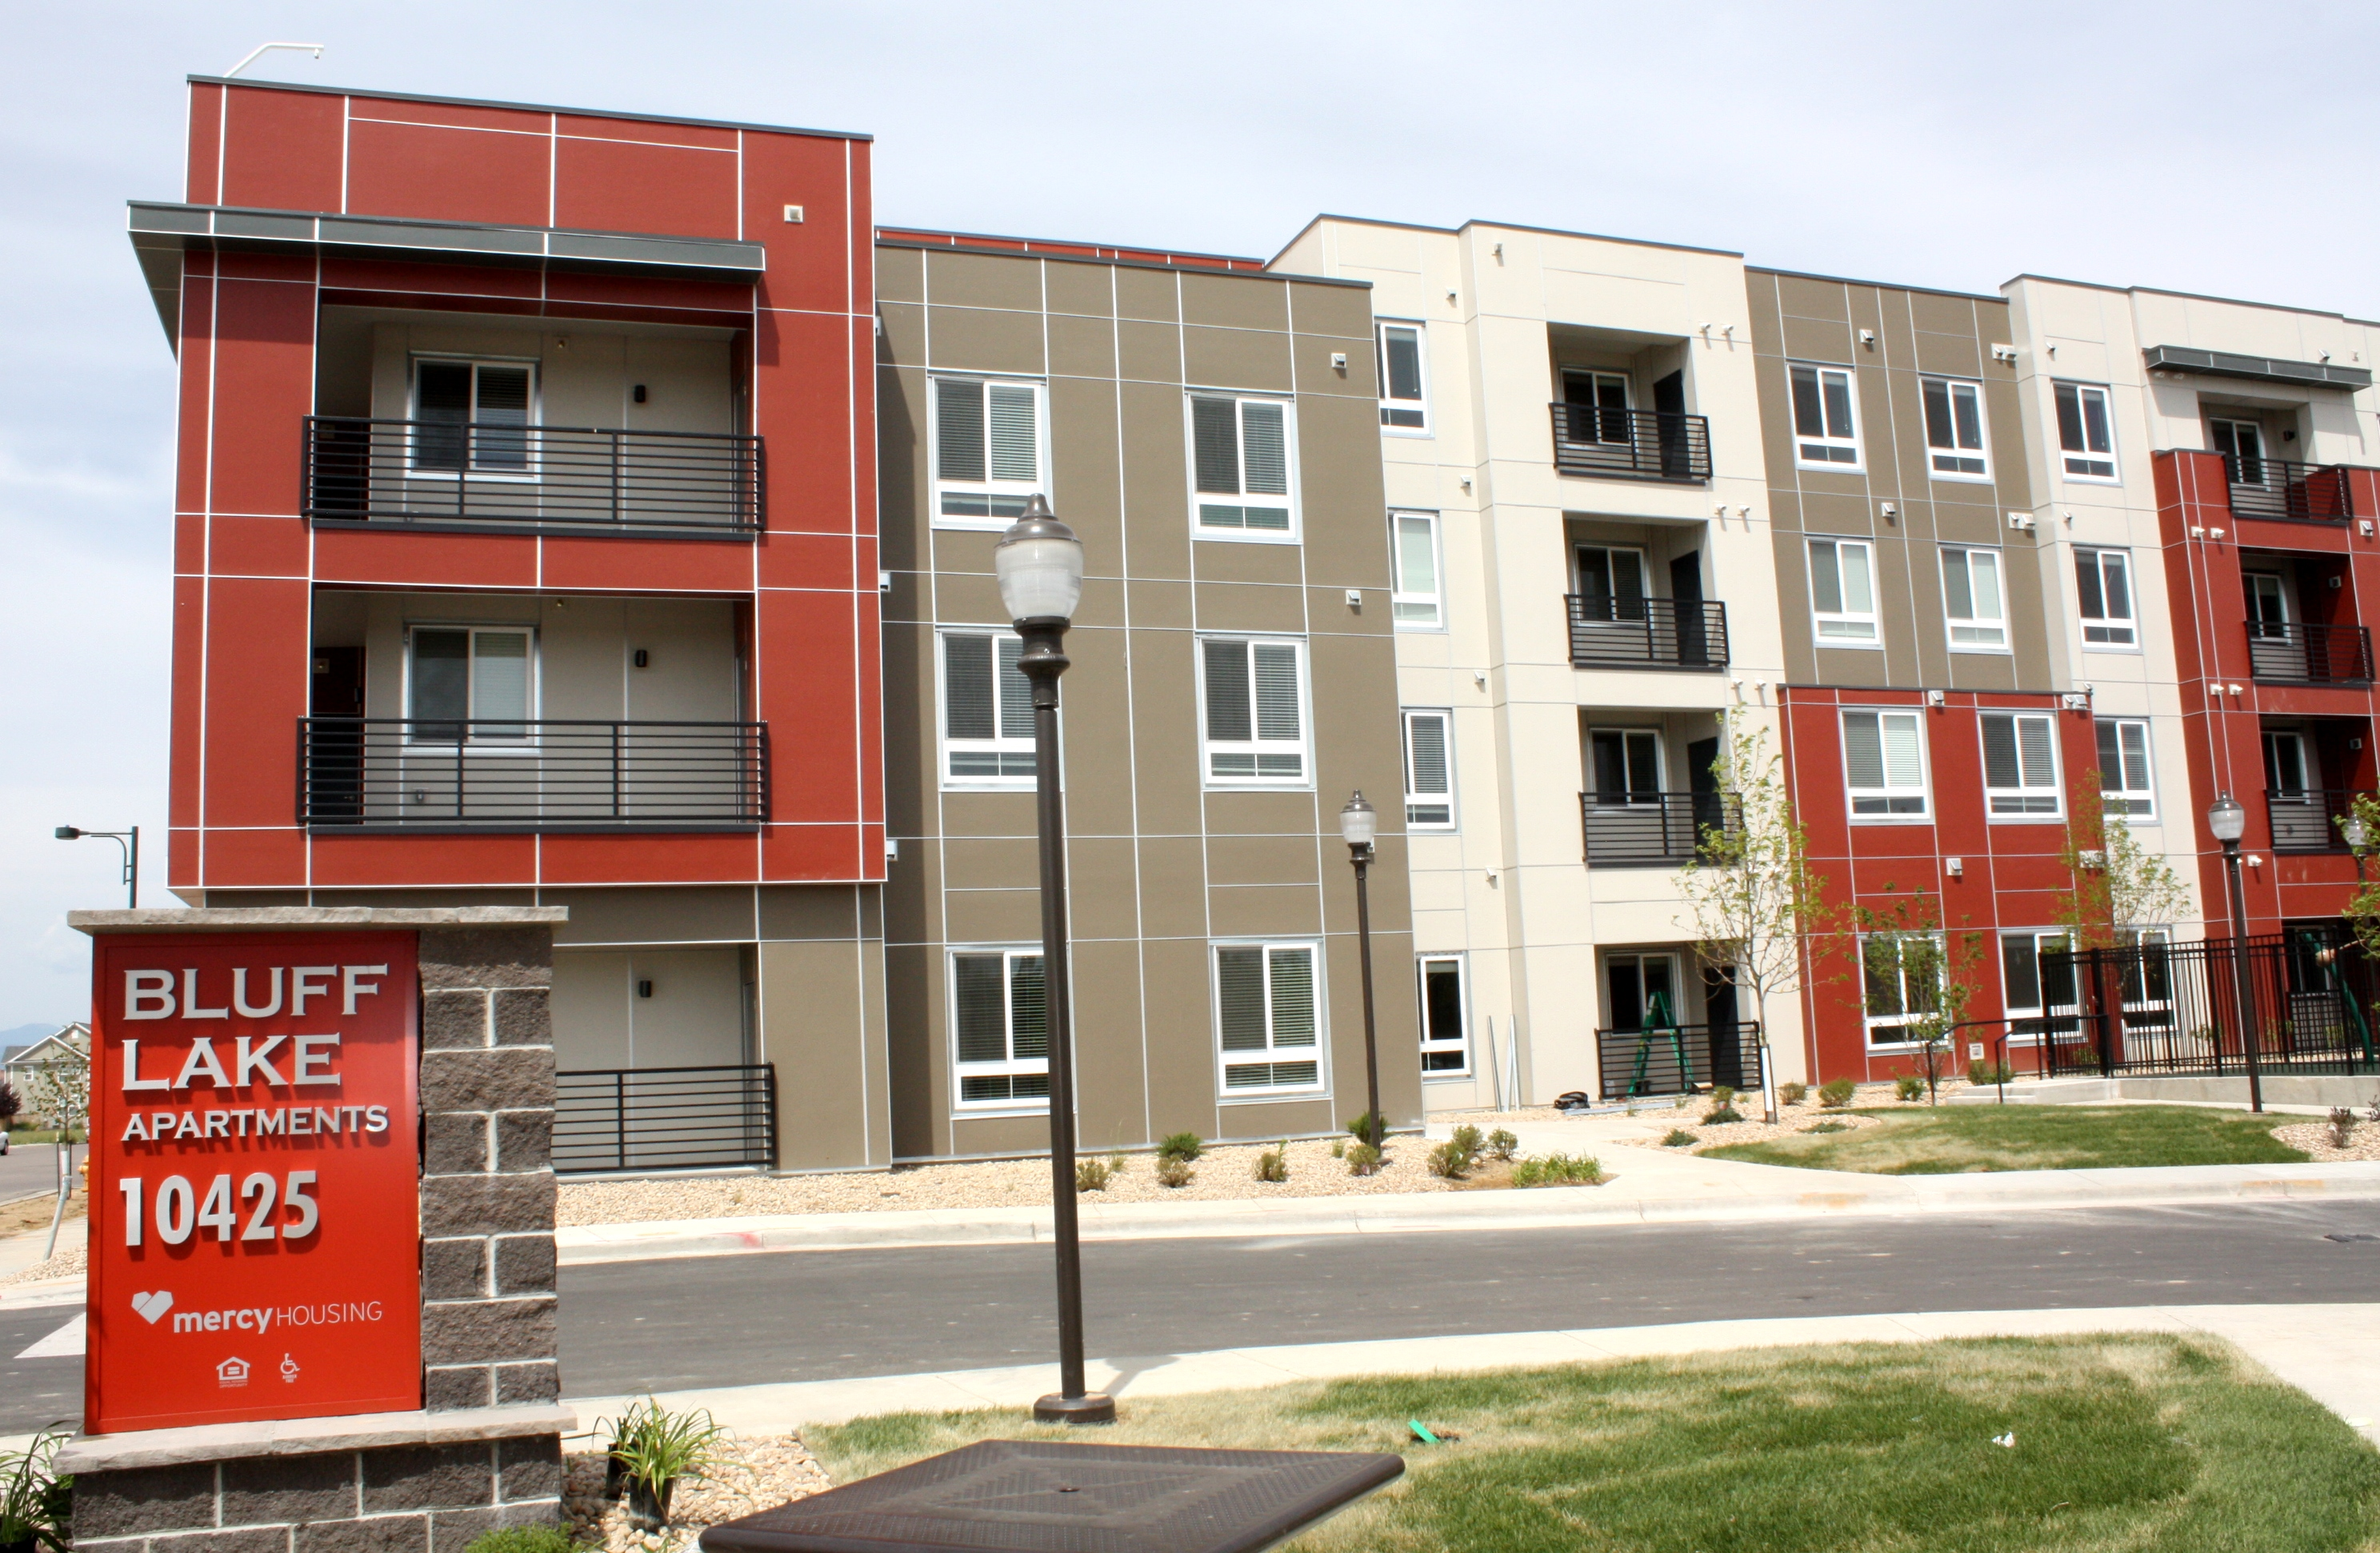 mercy housing welcomes bluff lake residents to affordable stapleton